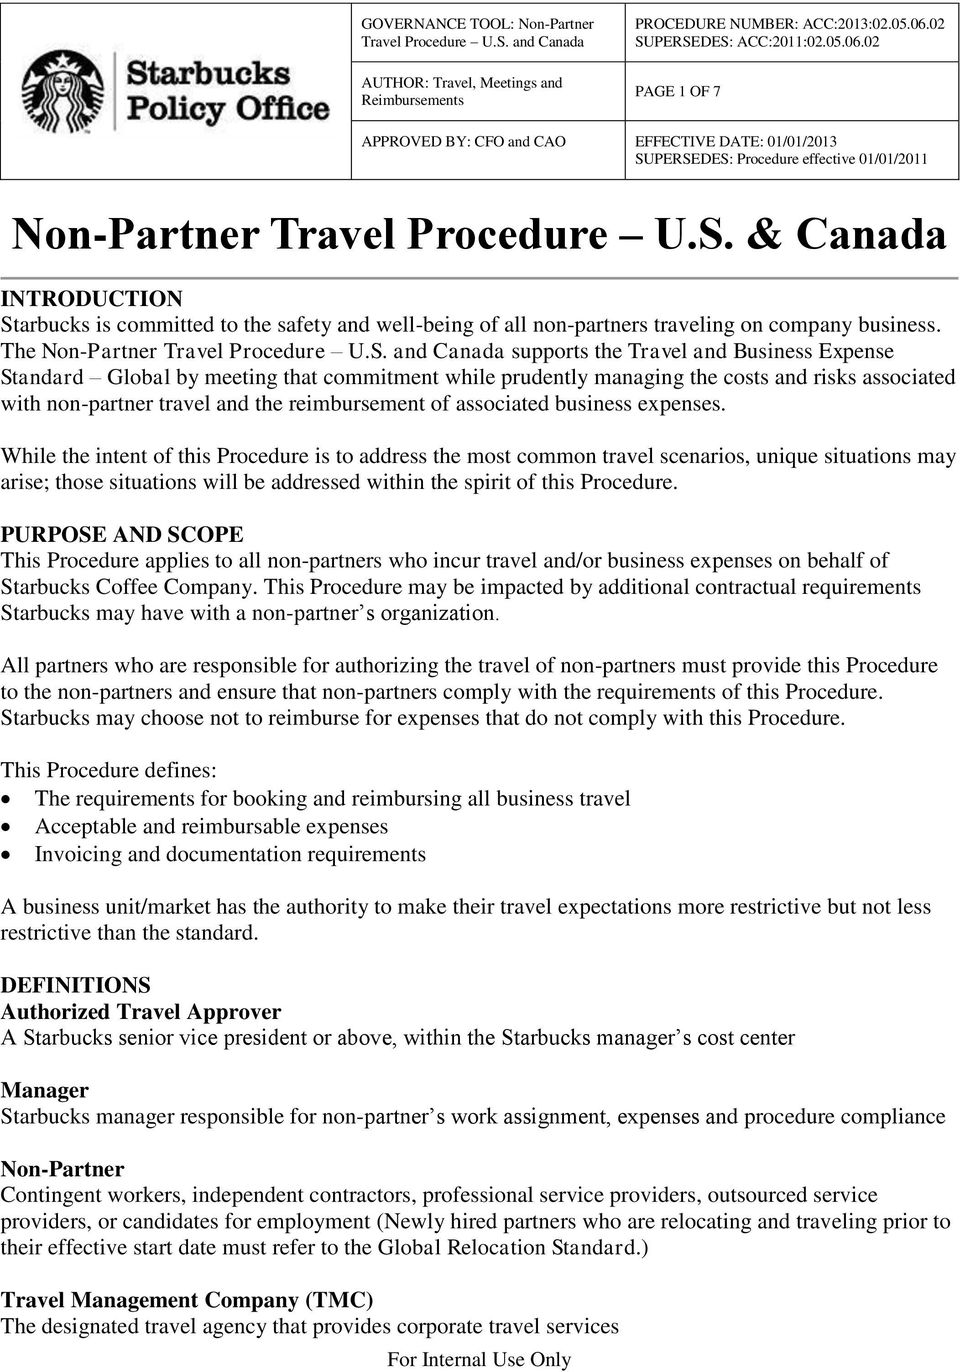 and Canada supports the Travel and Business Expense Standard Global by meeting that commitment while prudently managing the costs and risks associated with non-partner travel and the reimbursement of